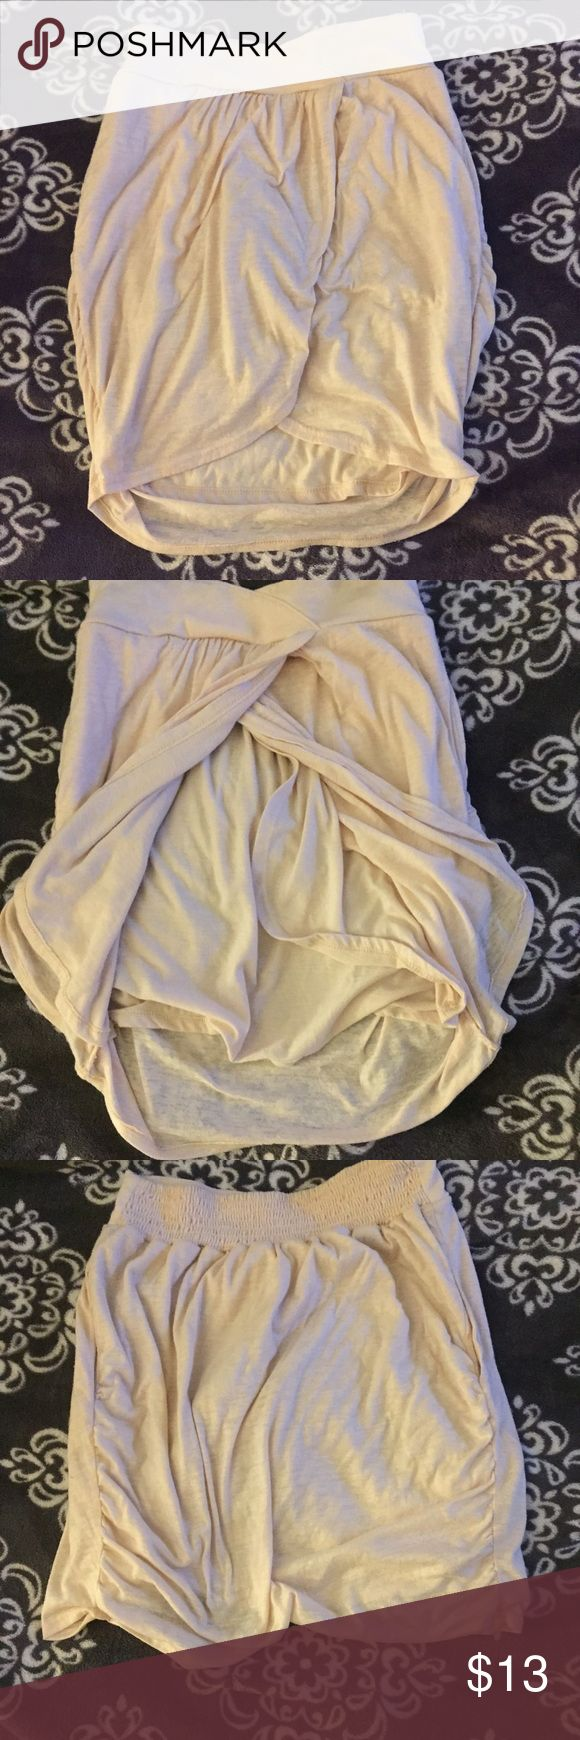 Silence + Noise sz. S light pink skirt Whimsical light pink flowy skirt... so comfortable! & has pockets! Excellent condition! silence + noise Skirts Mini